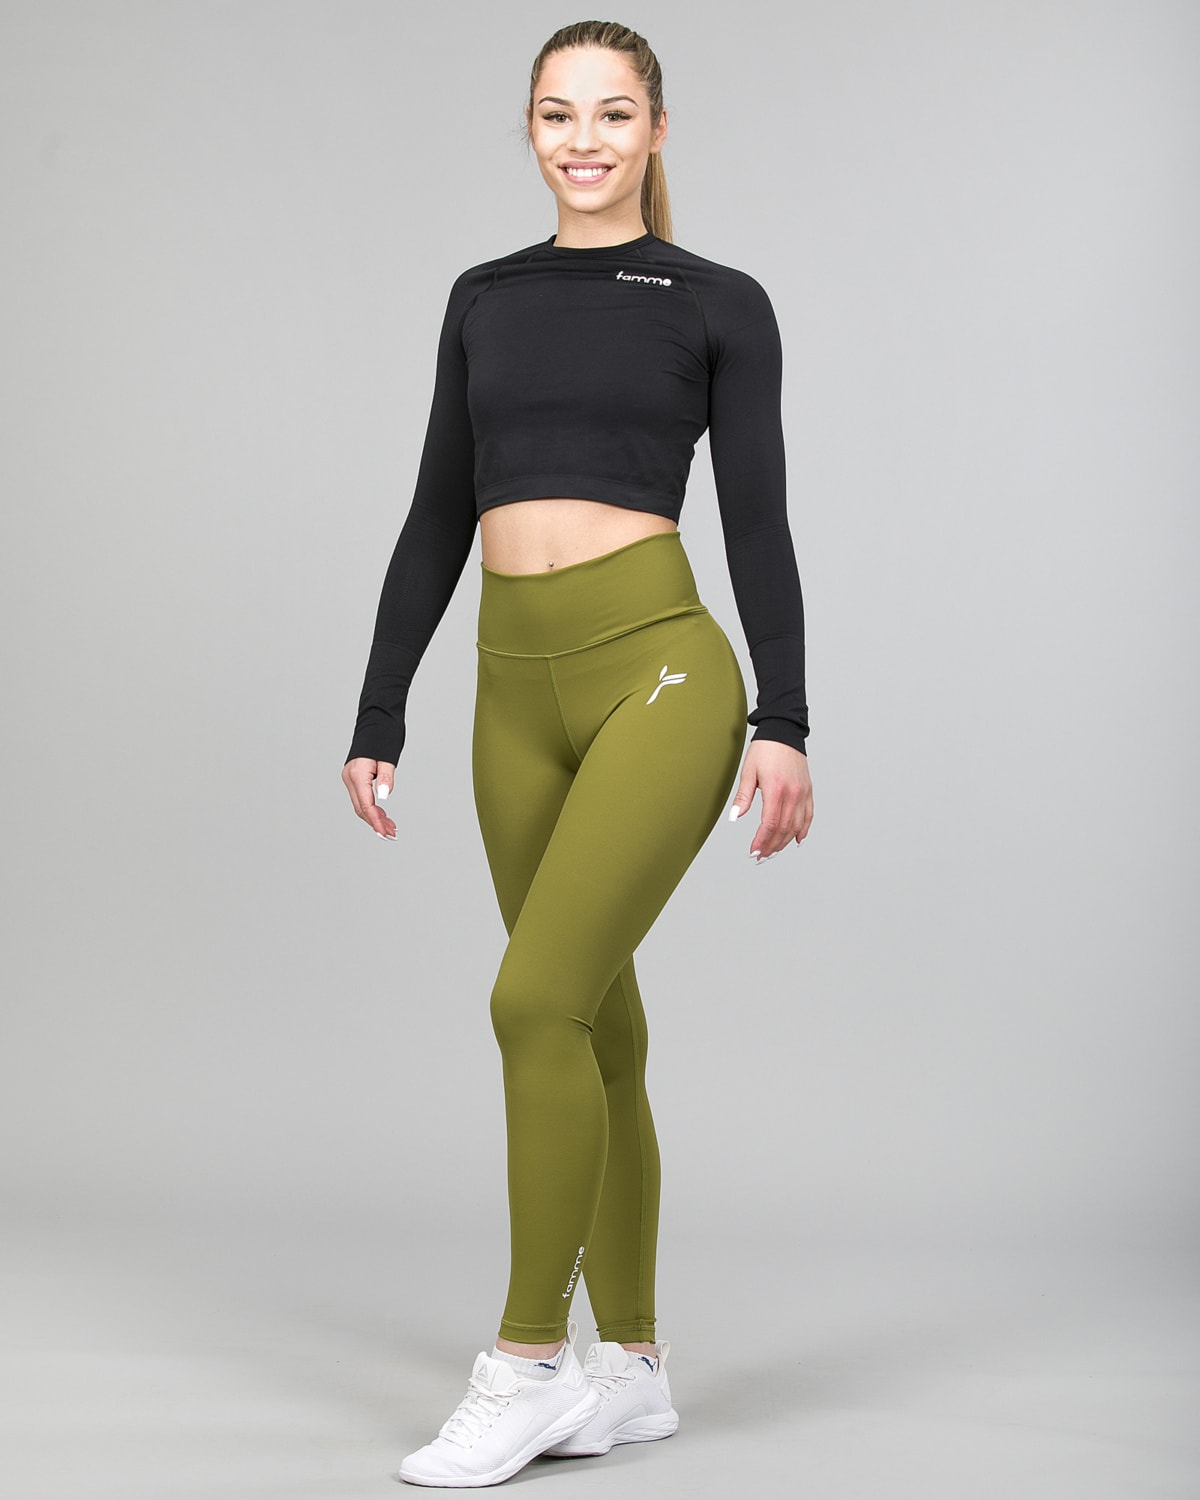 Famme Ocean Crop Top Black ocls-bk and Essential High Waist Leggings Forest Green ehwt-fg